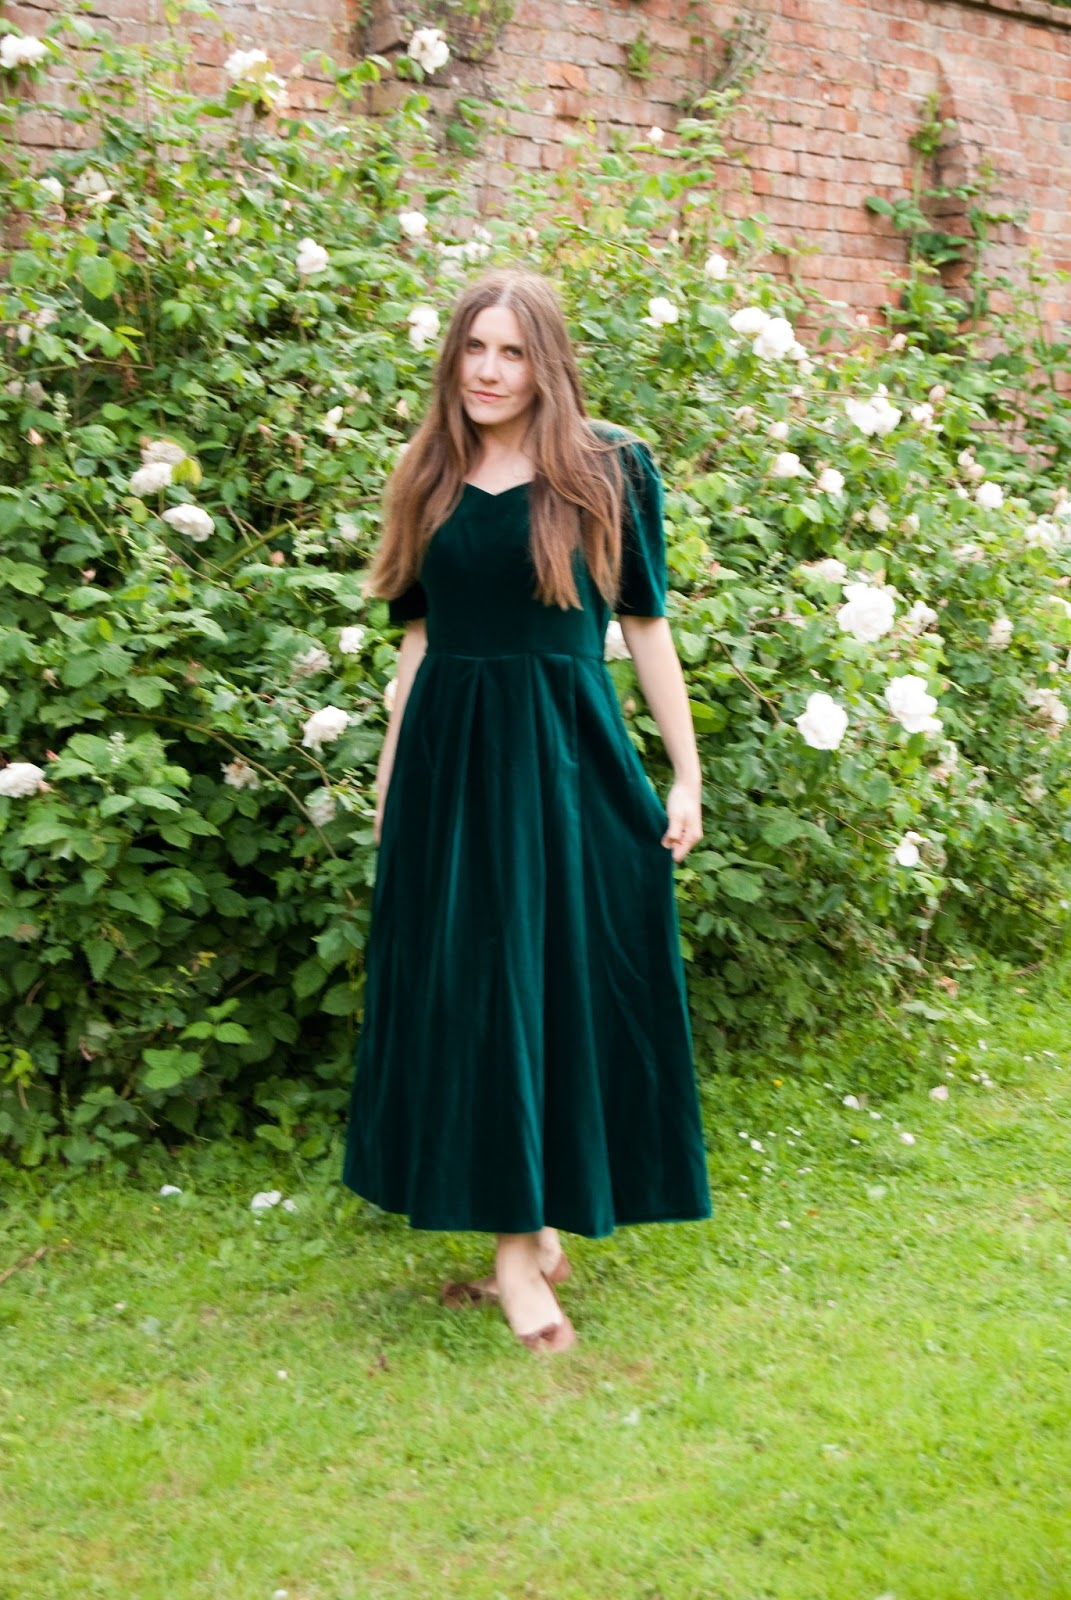 dating laura ashley labels Jane air wearing a laura ashley peasant style dress from the 1970s labels: jane air poet, laura ashley 1970s peasant dress it is a satire on online dating.